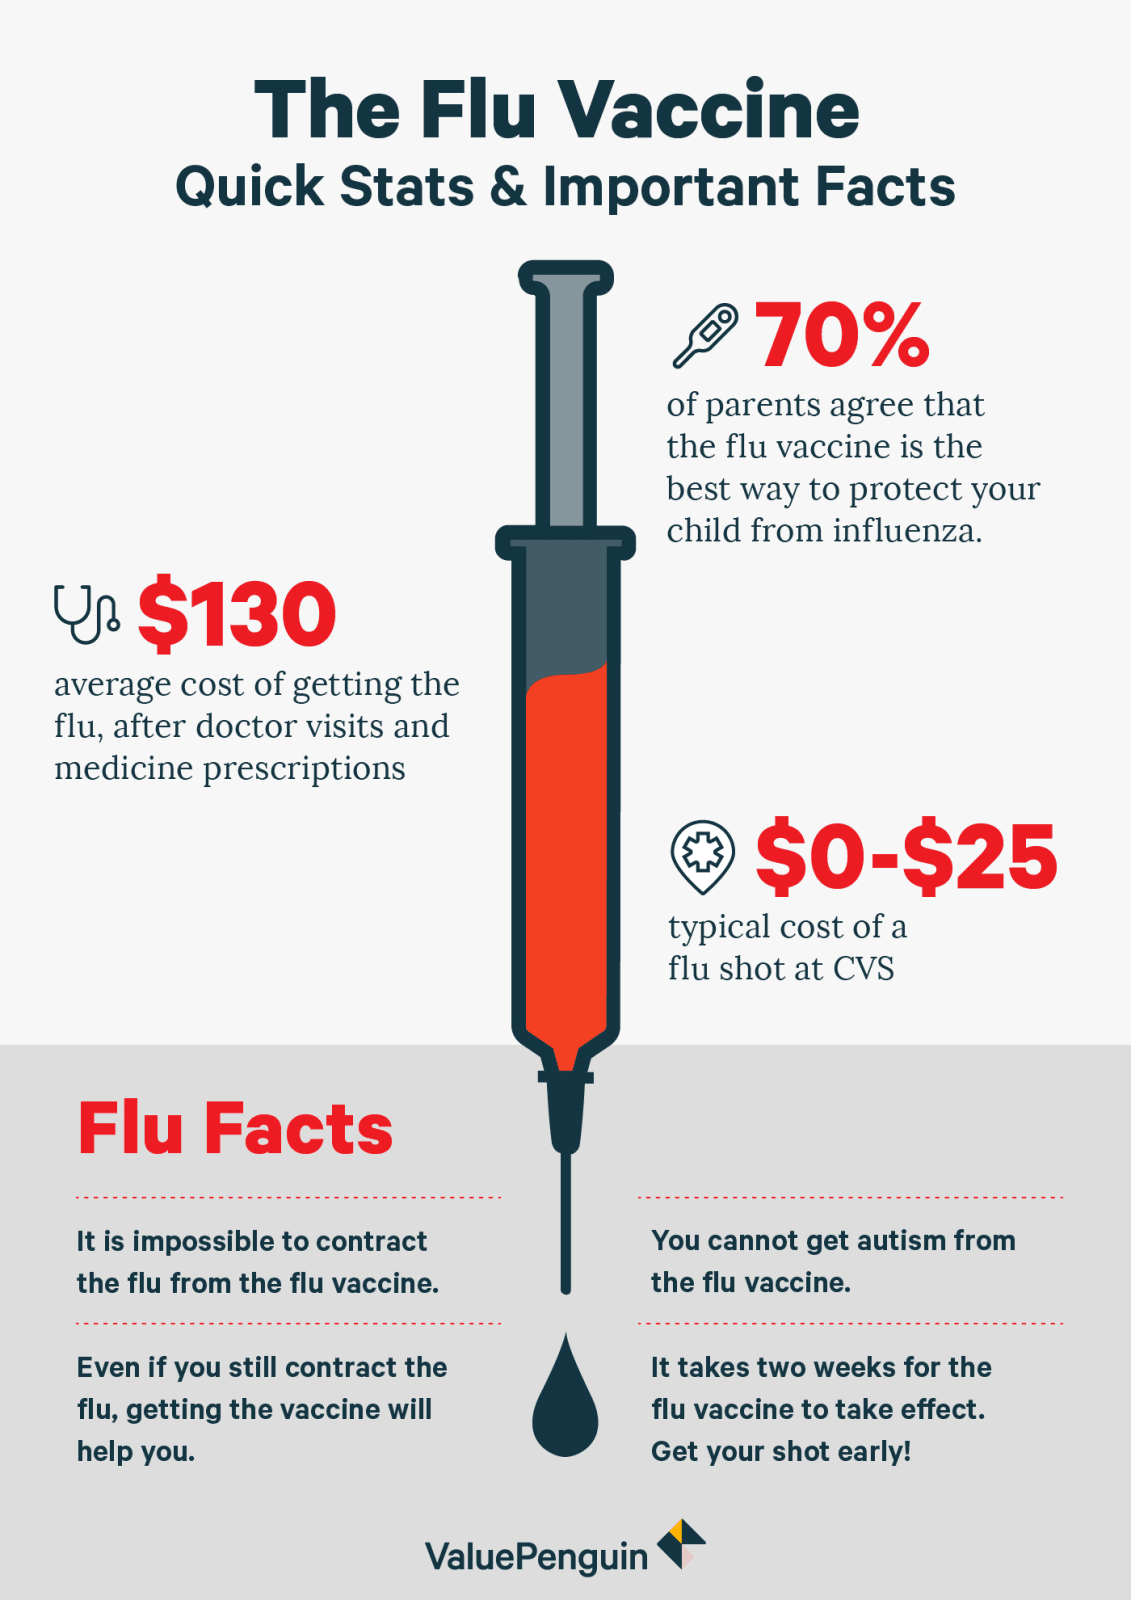 The Flu Vaccine: Quick Stats & Important Facts